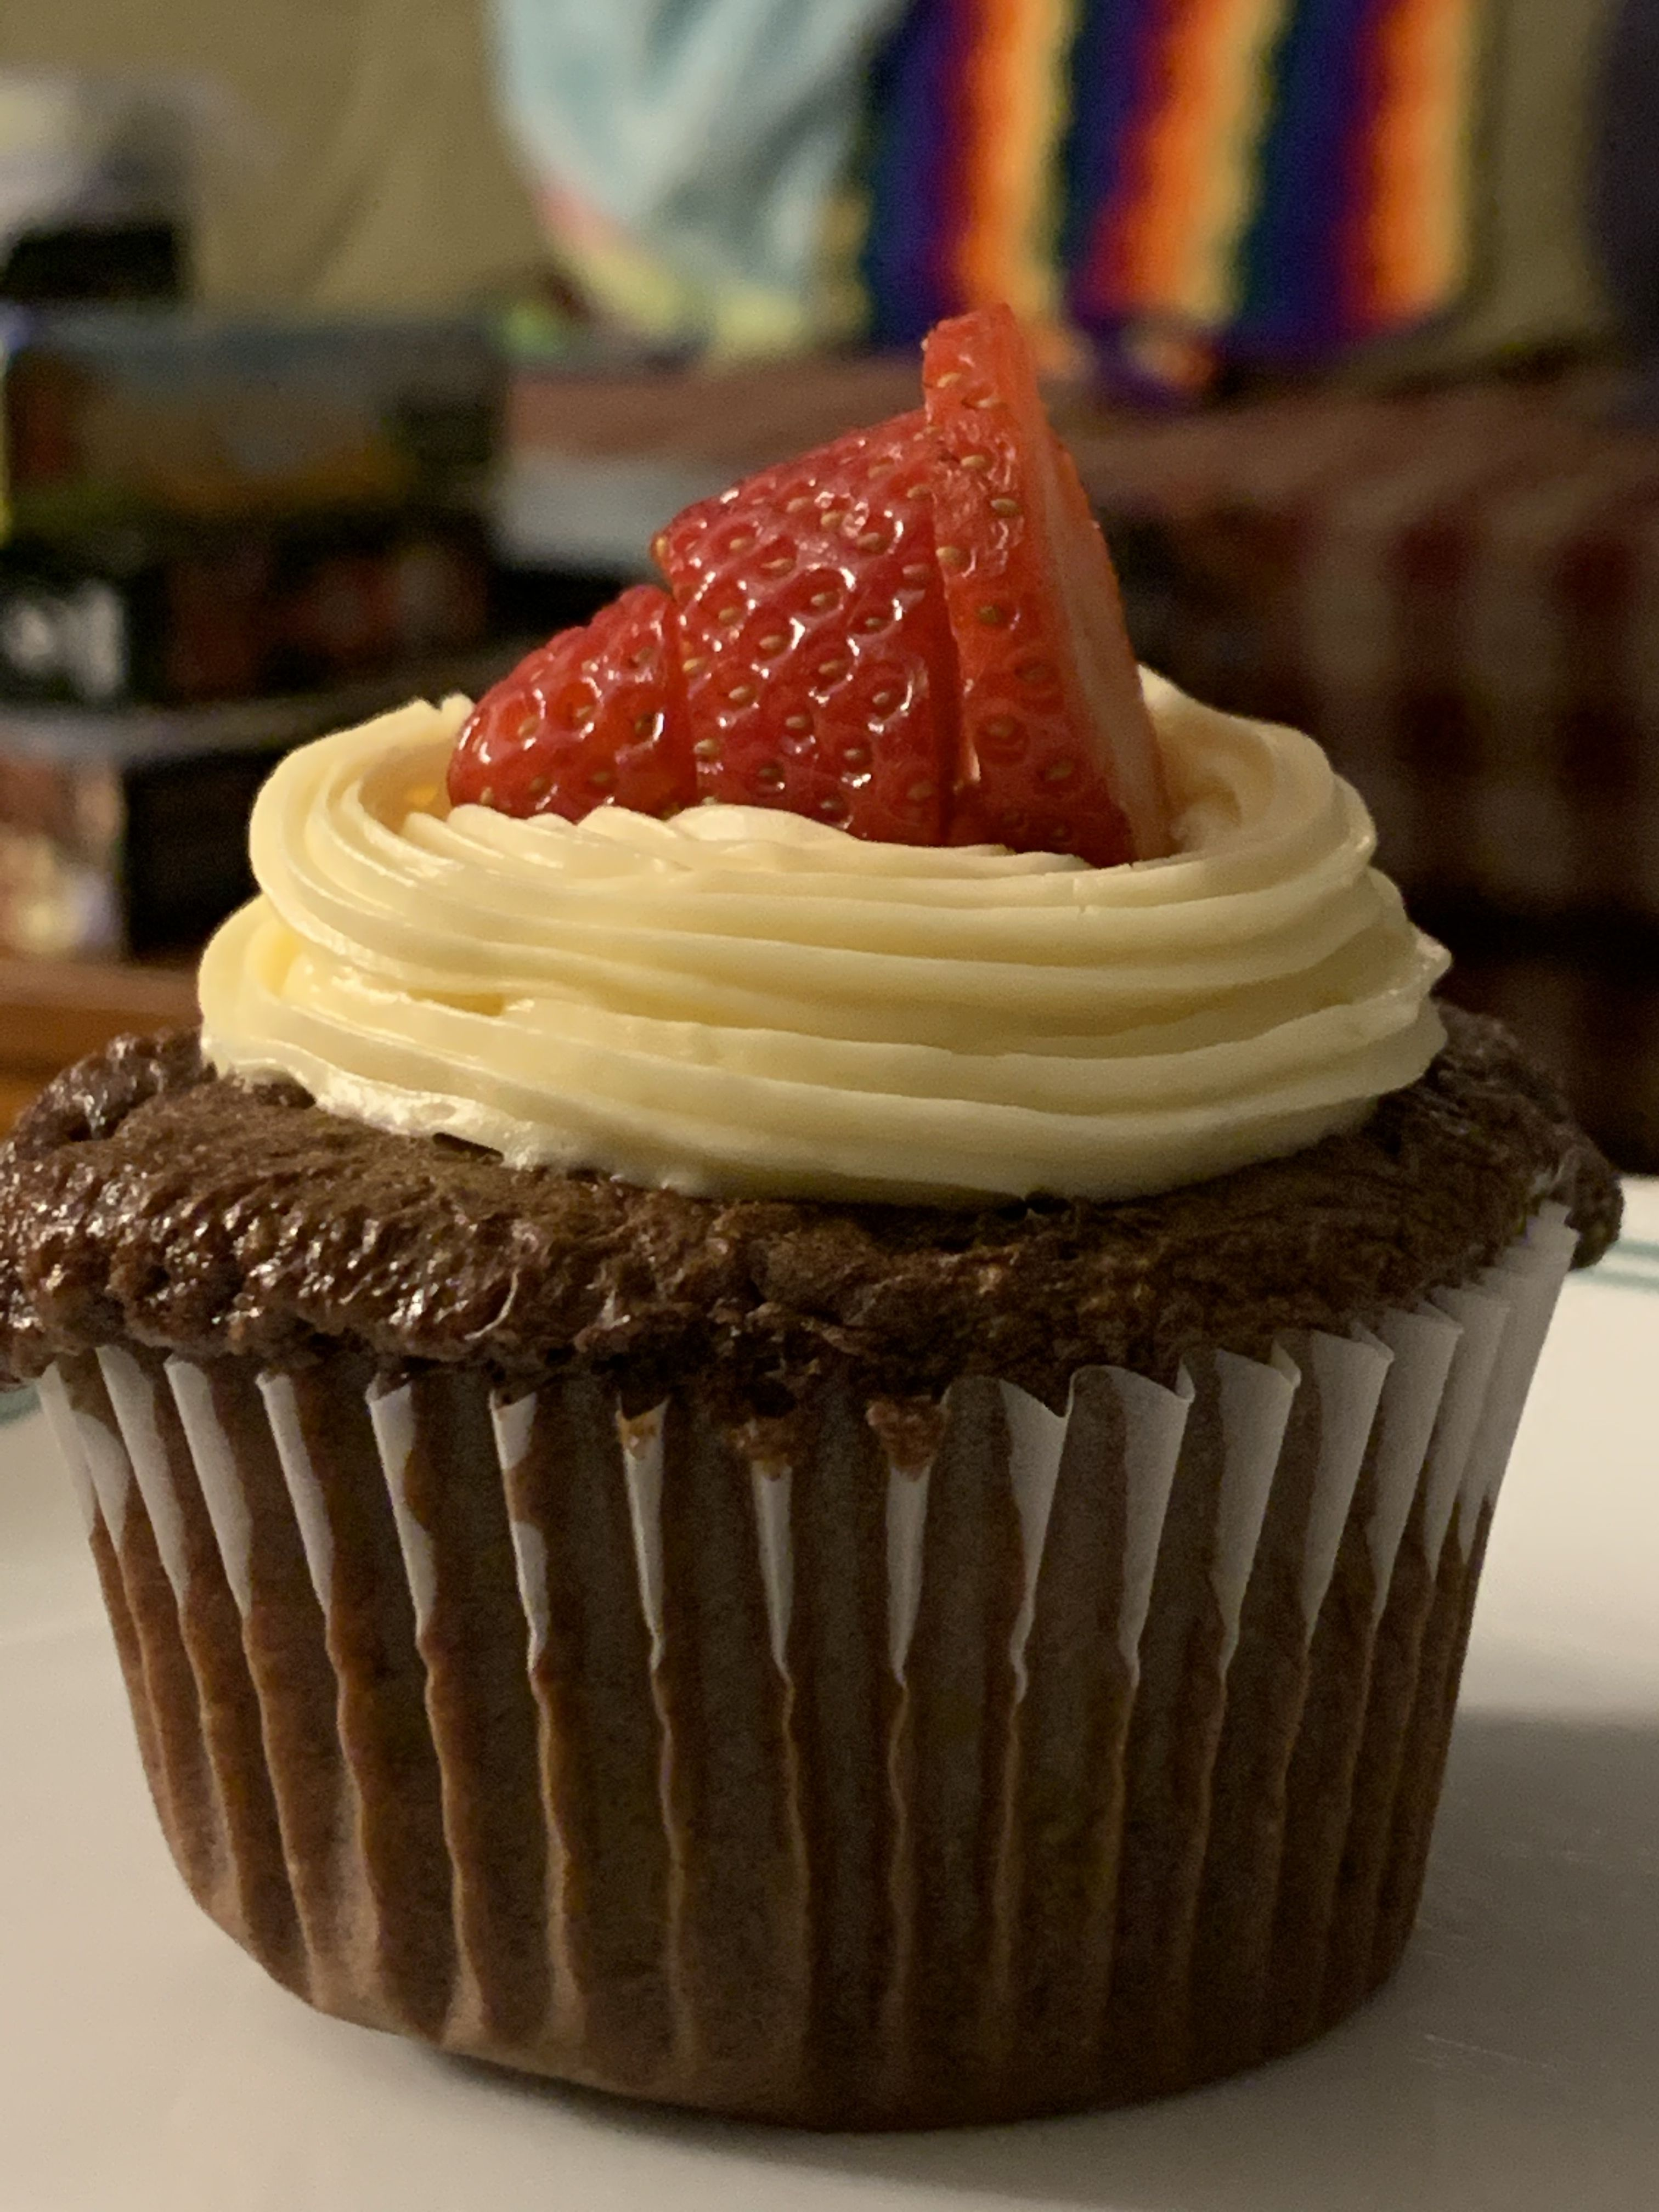 Chocolate-Dipped Strawberry Cupcakes